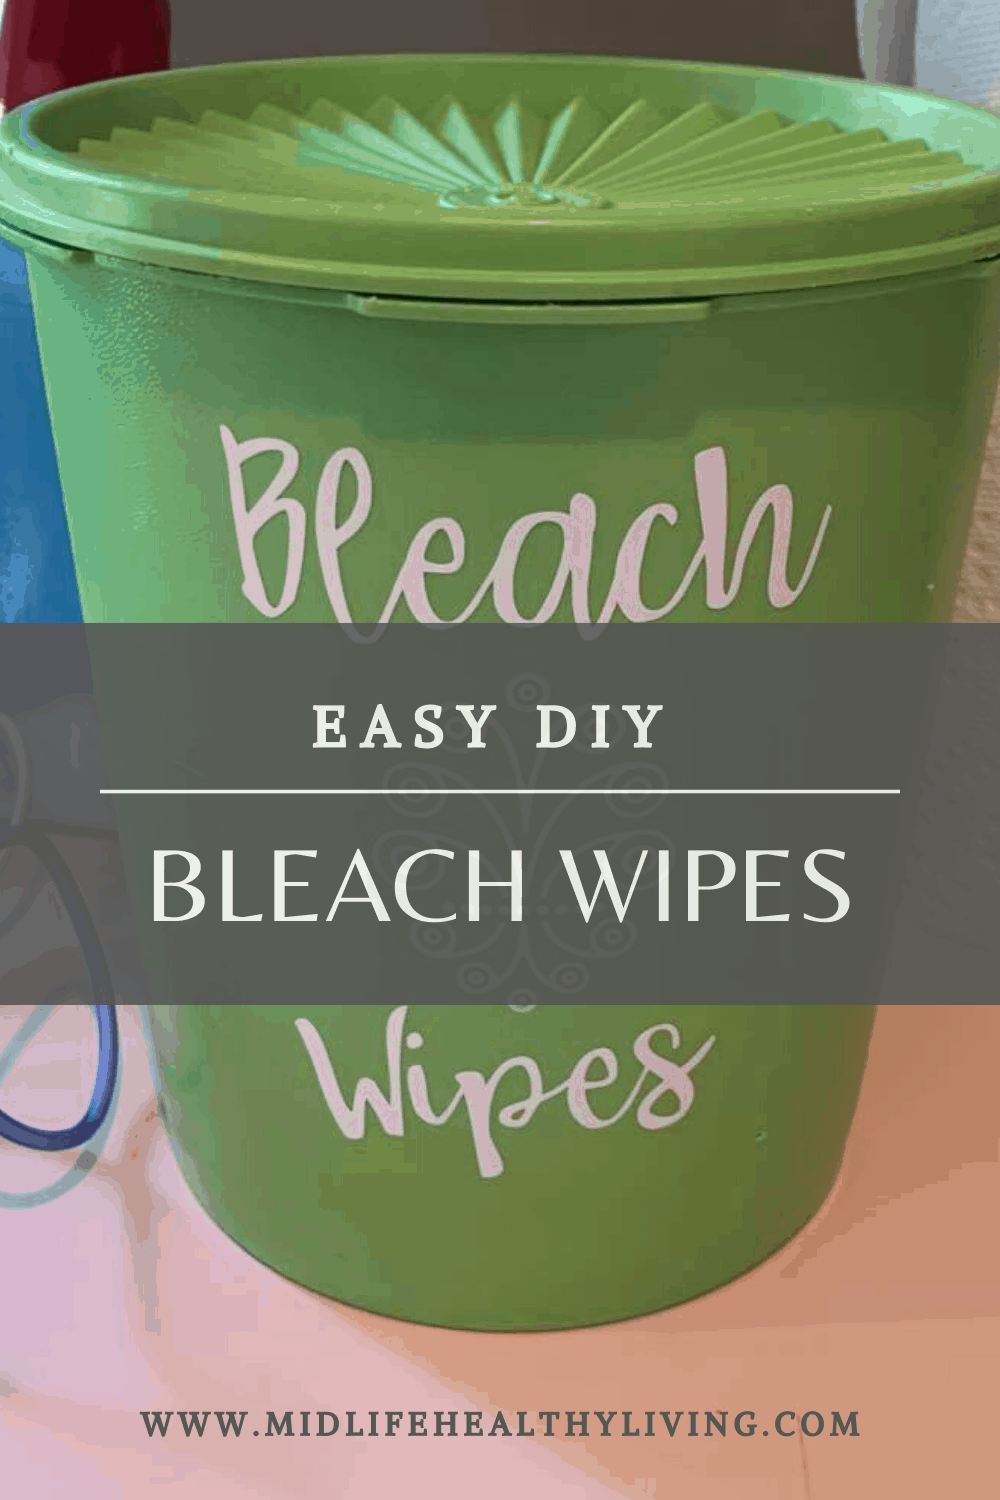 Here we see a pin for the DIY bleach wipes tutorial.